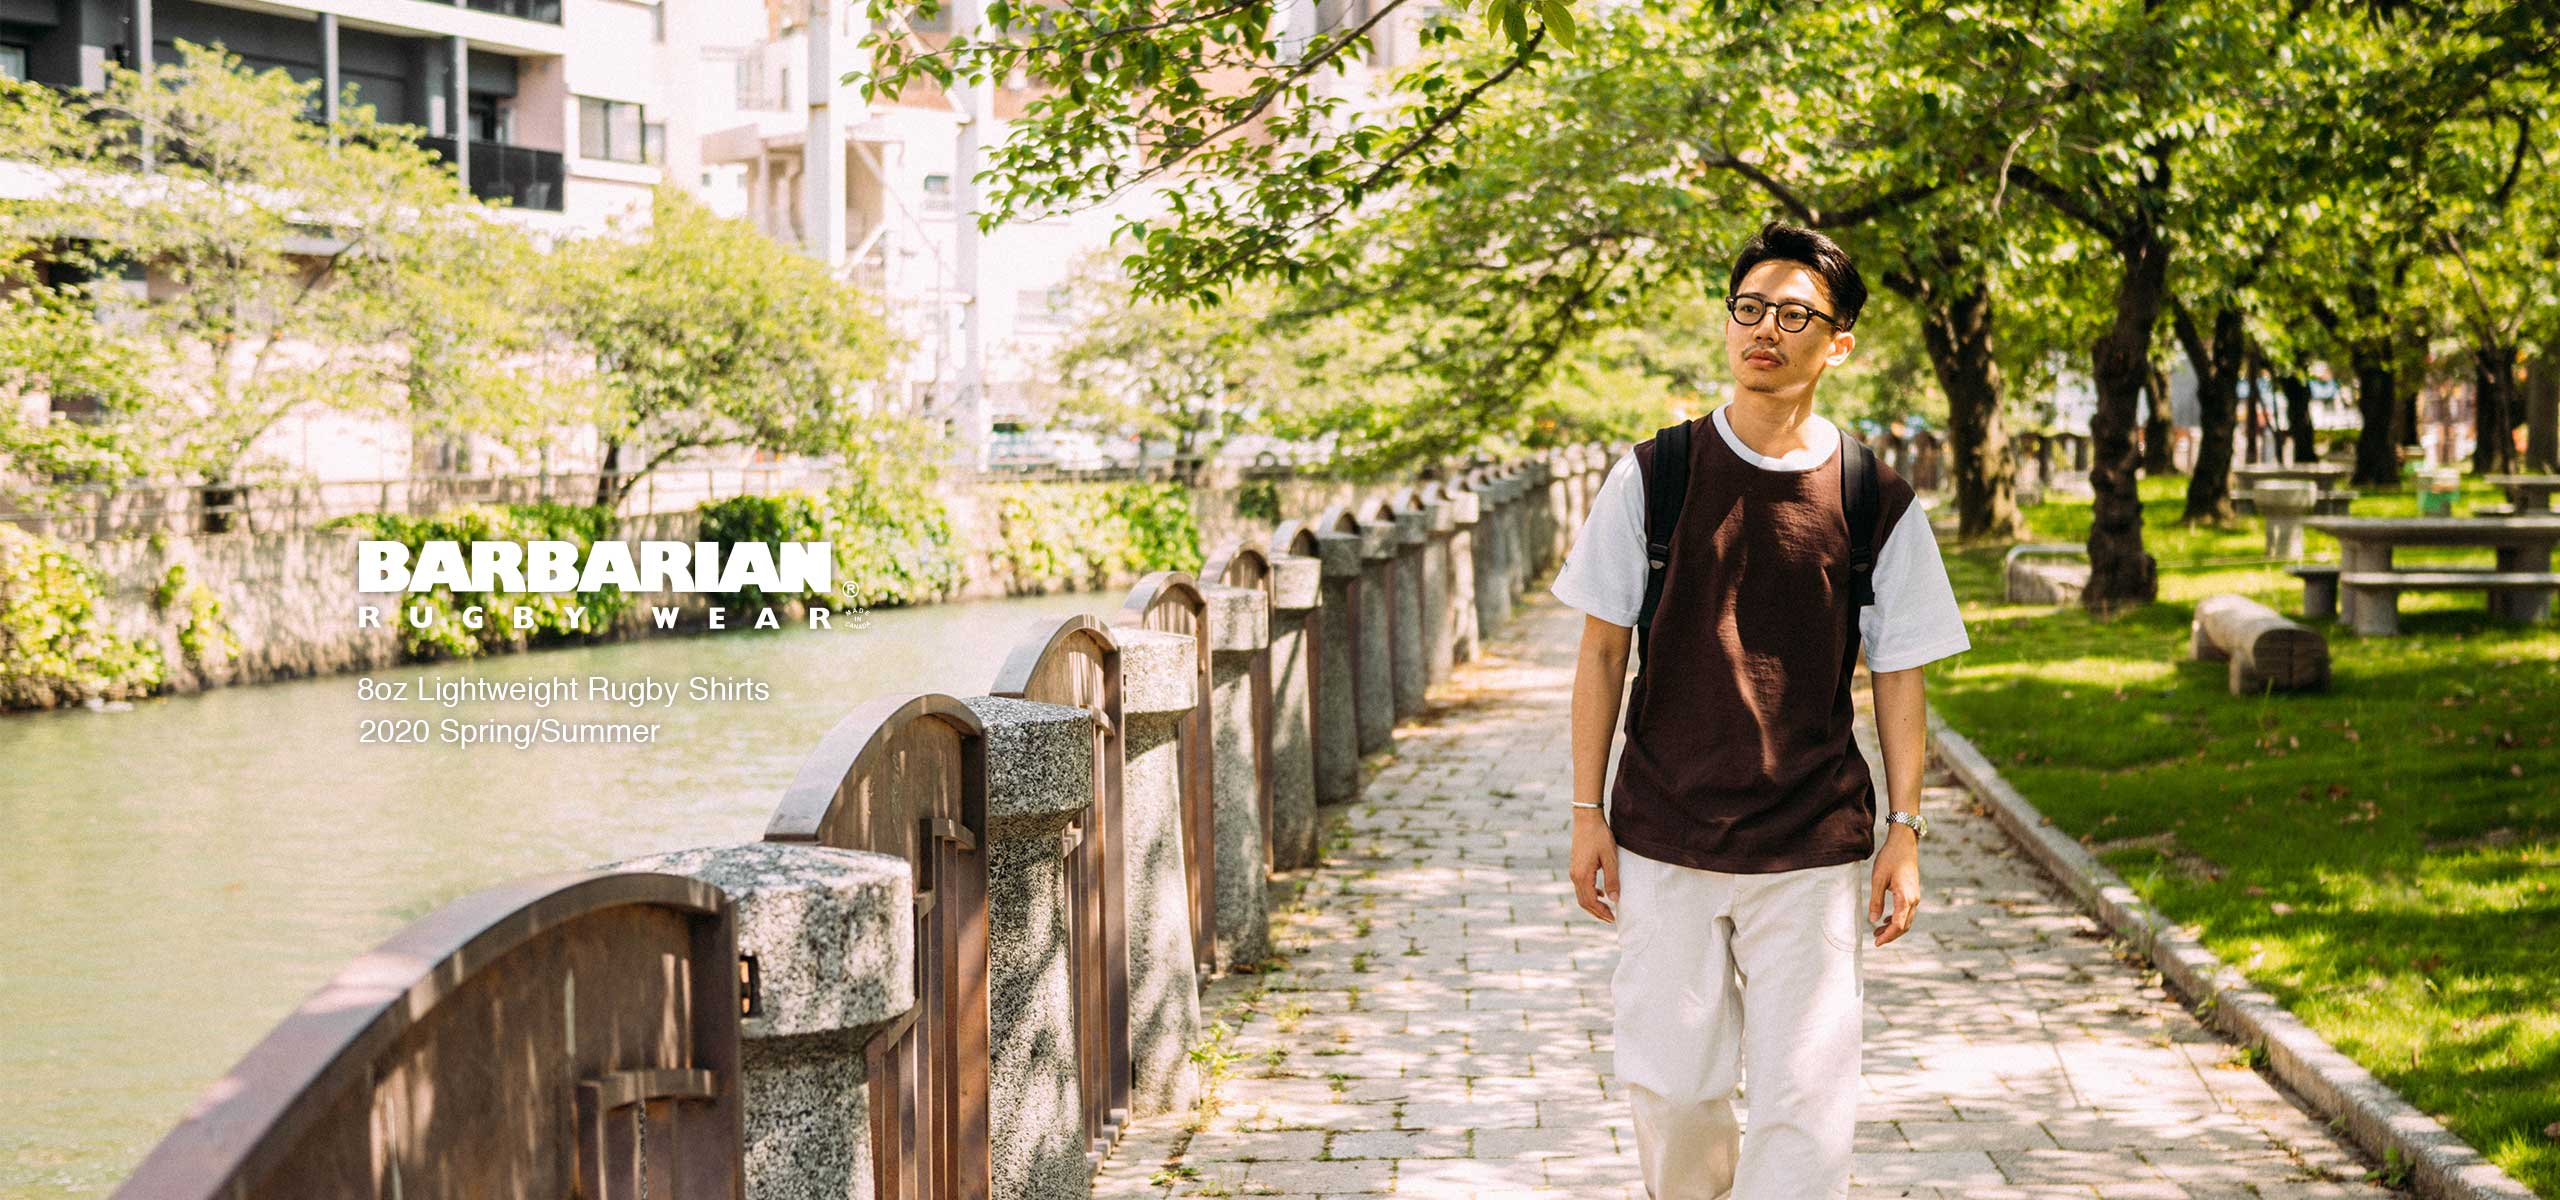 Brown is early summer -BARBARIAN 2020 S/S Vol.4 -